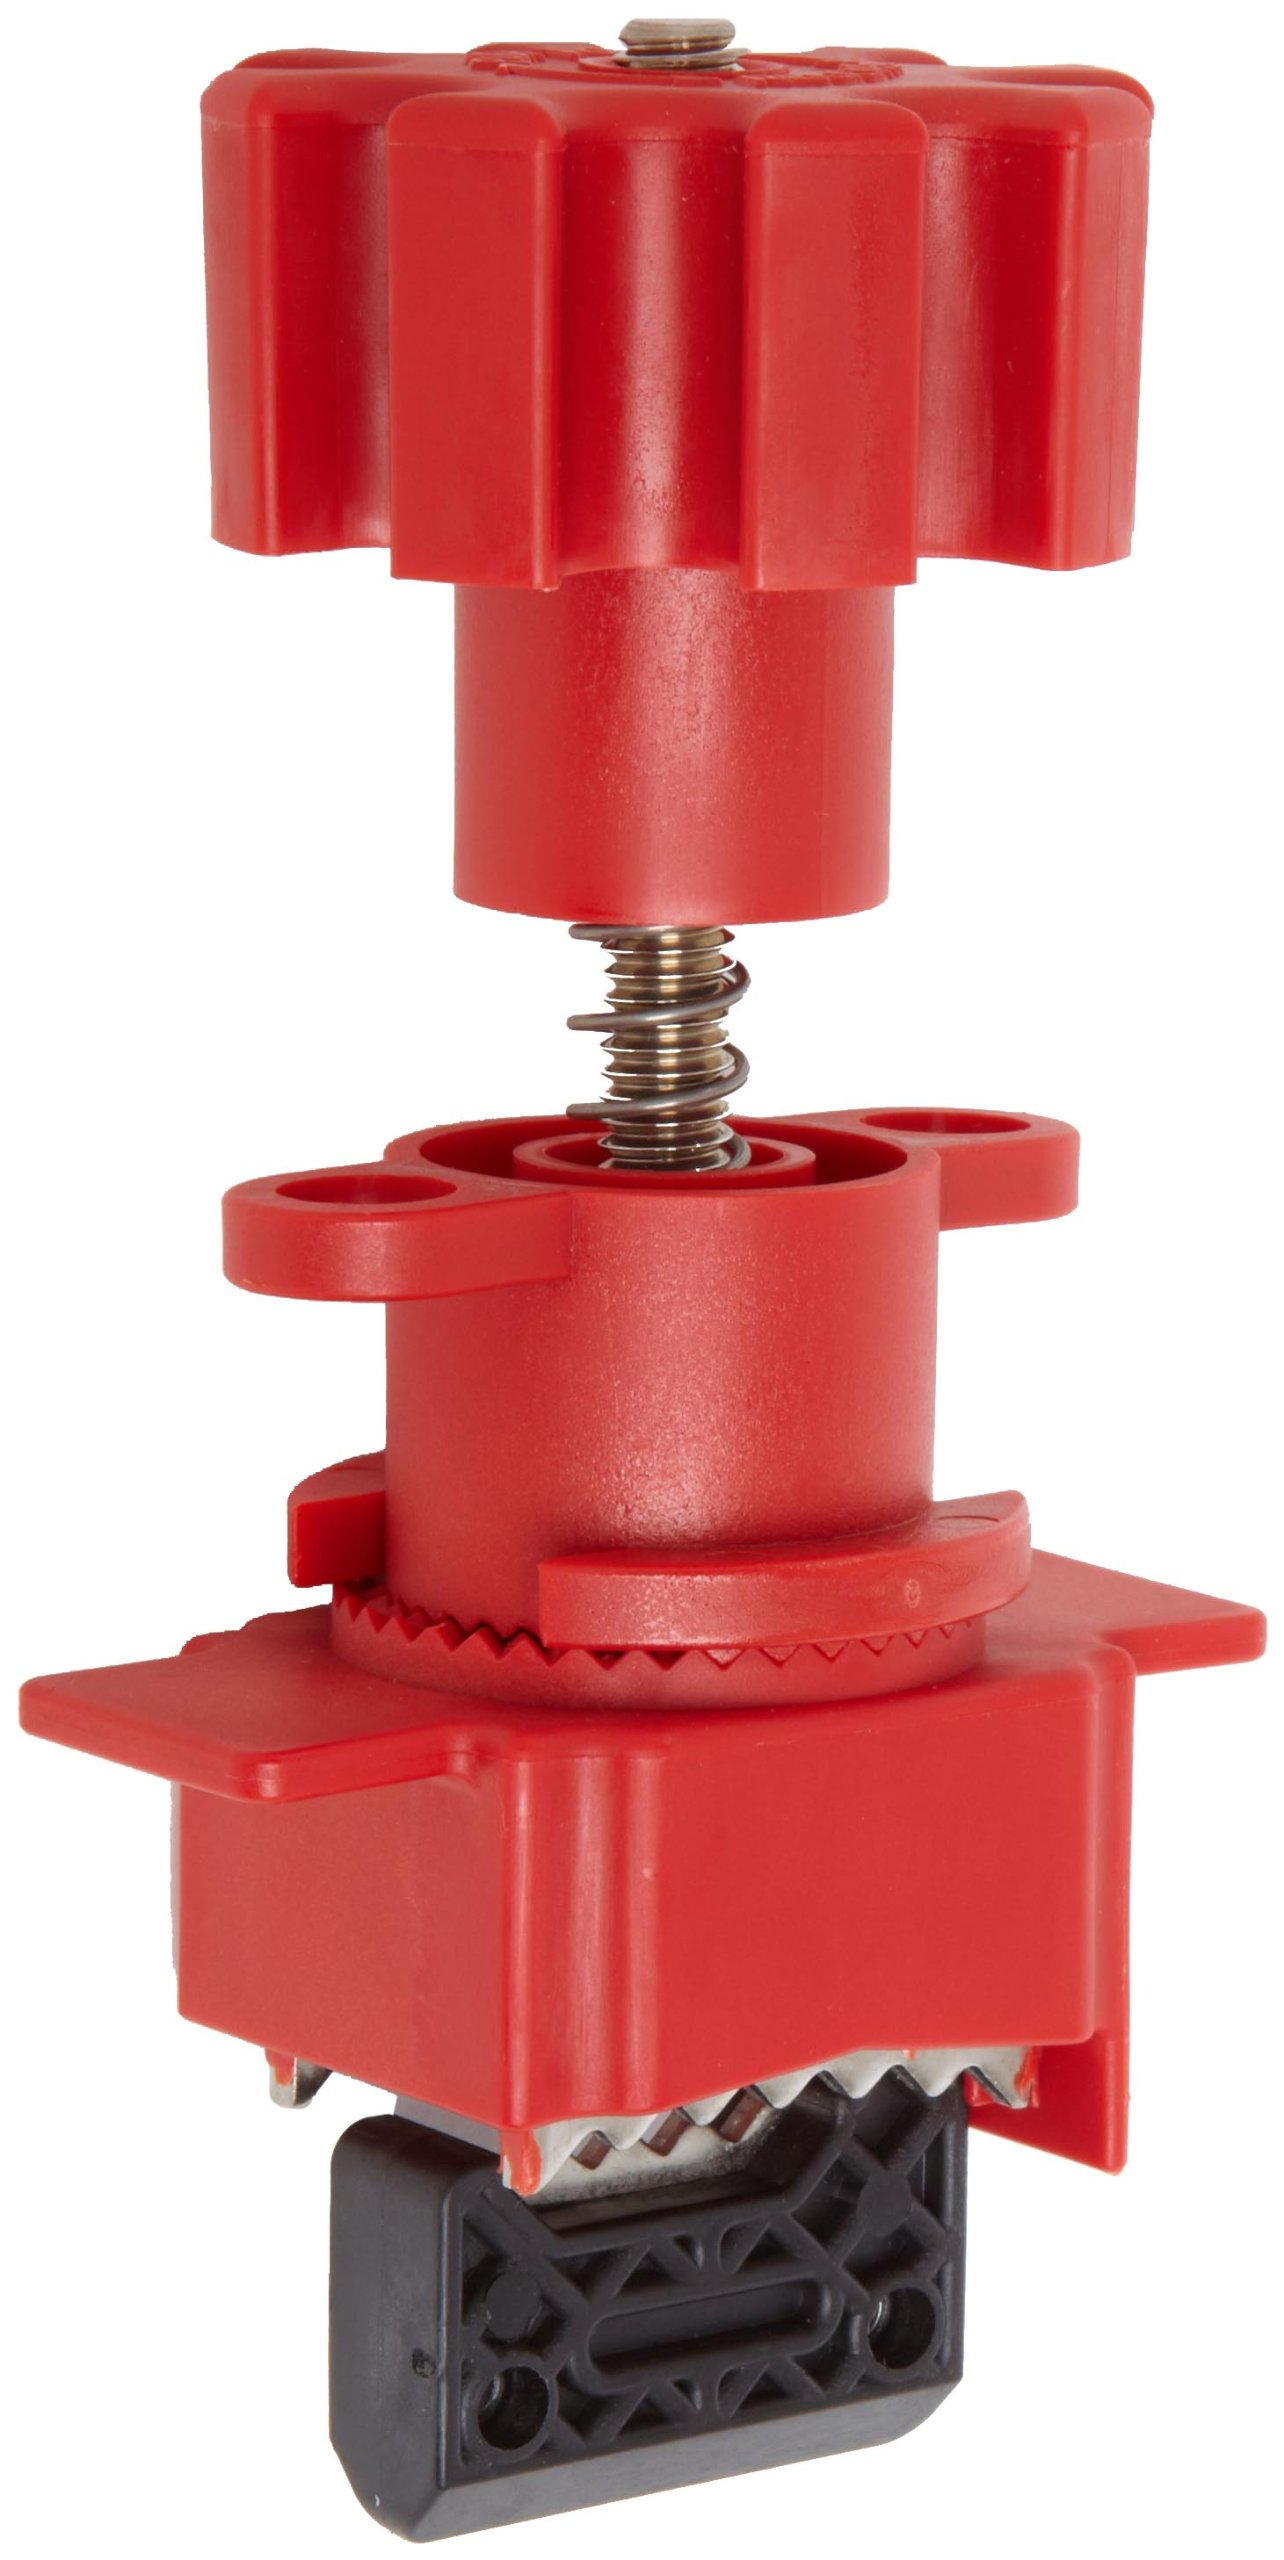 Brady Universal Valve Lockout Base Clamping Unit, Small